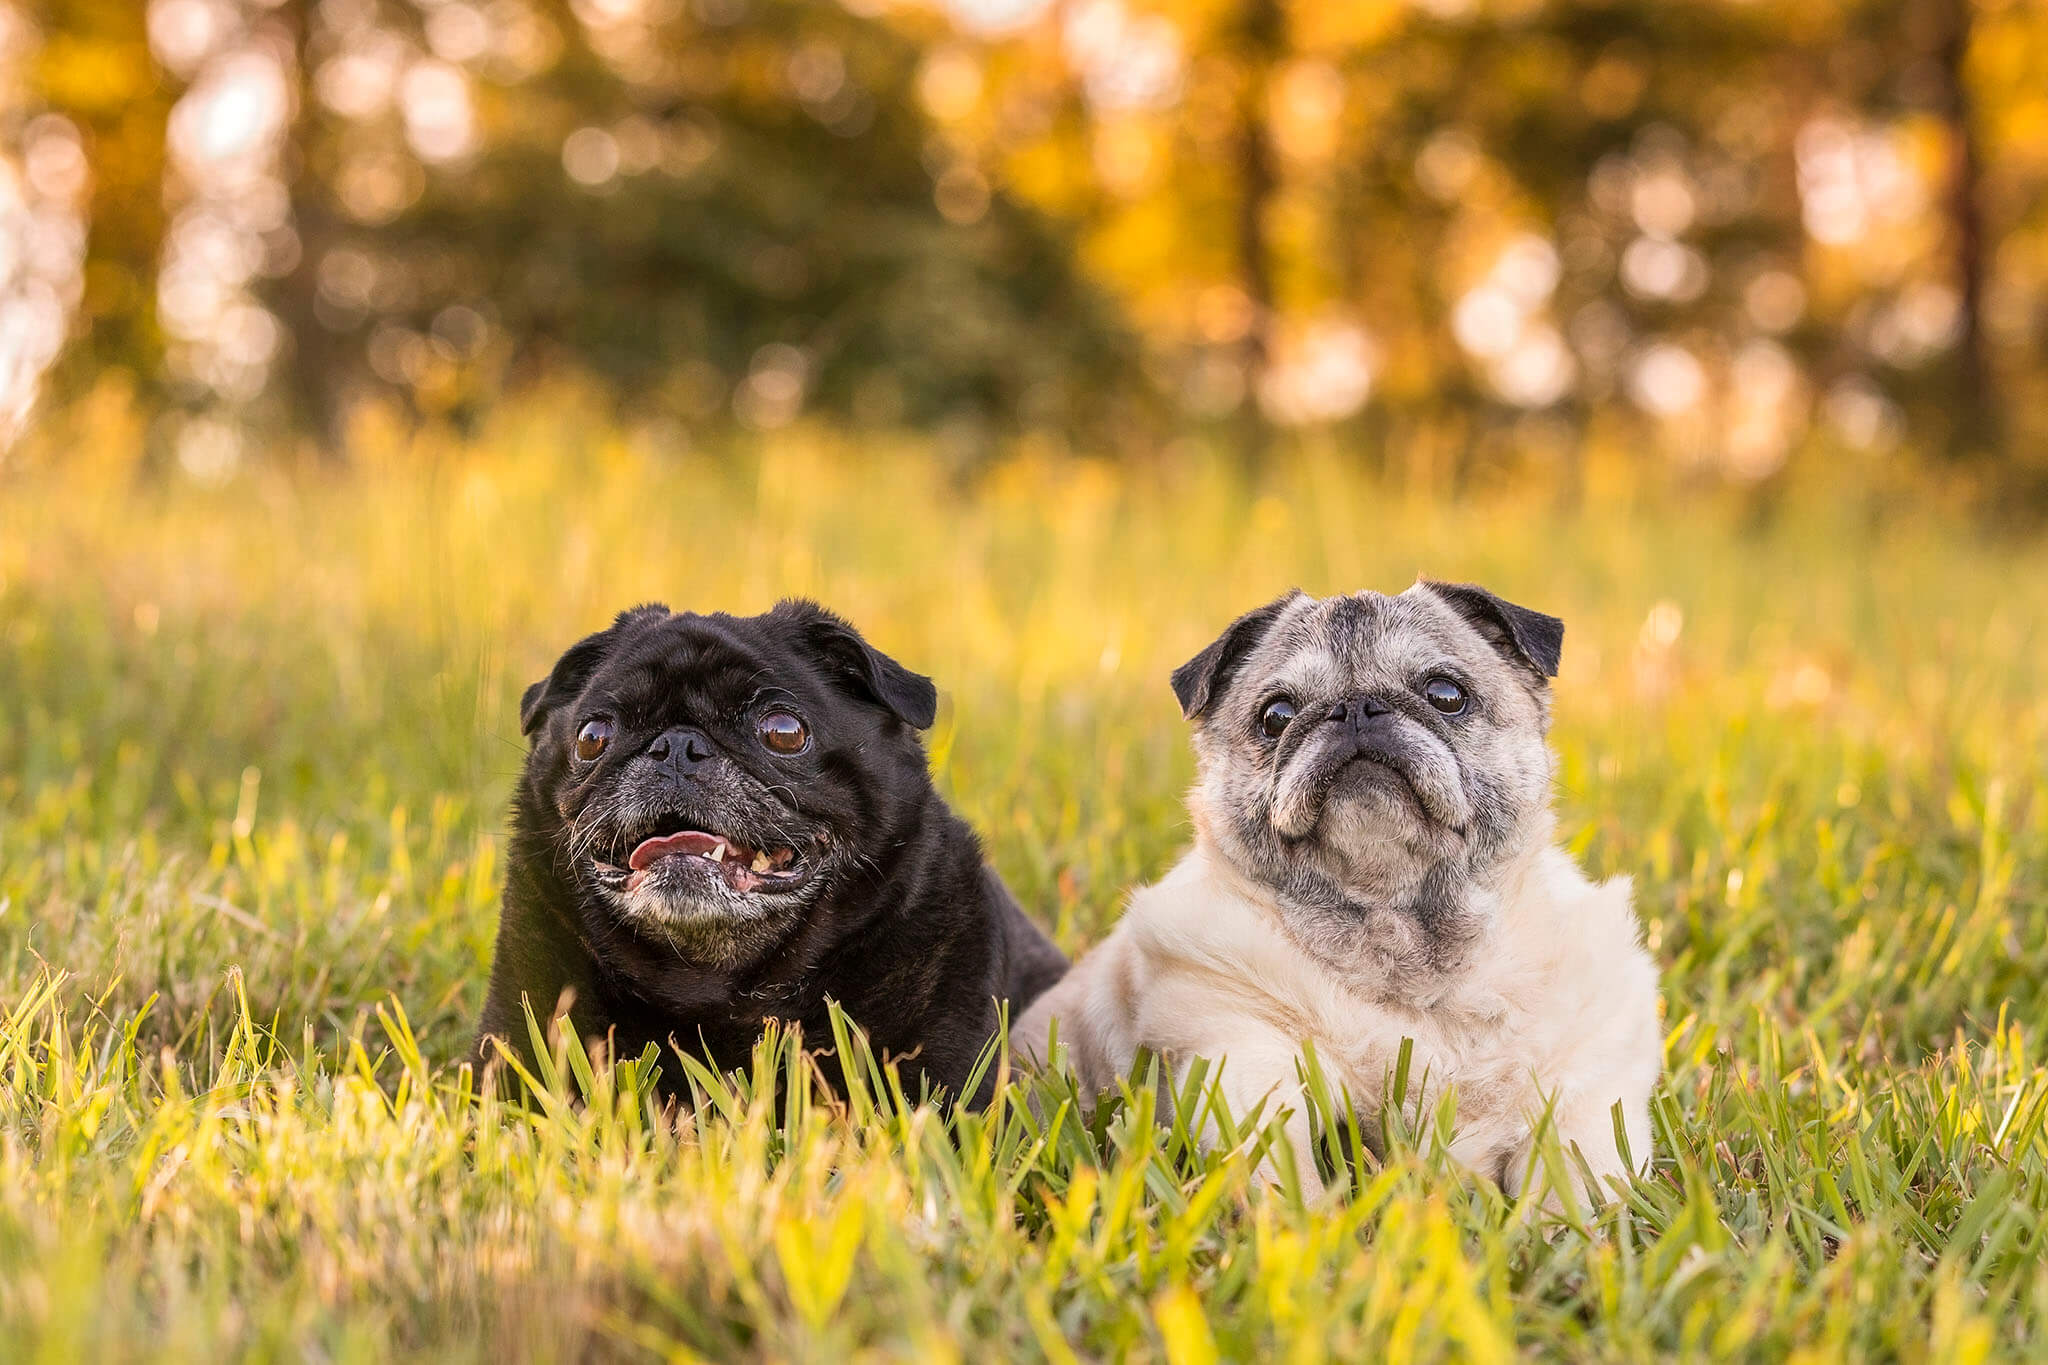 A black pug and a senior cream and black pug sitting in the grass on the farm.